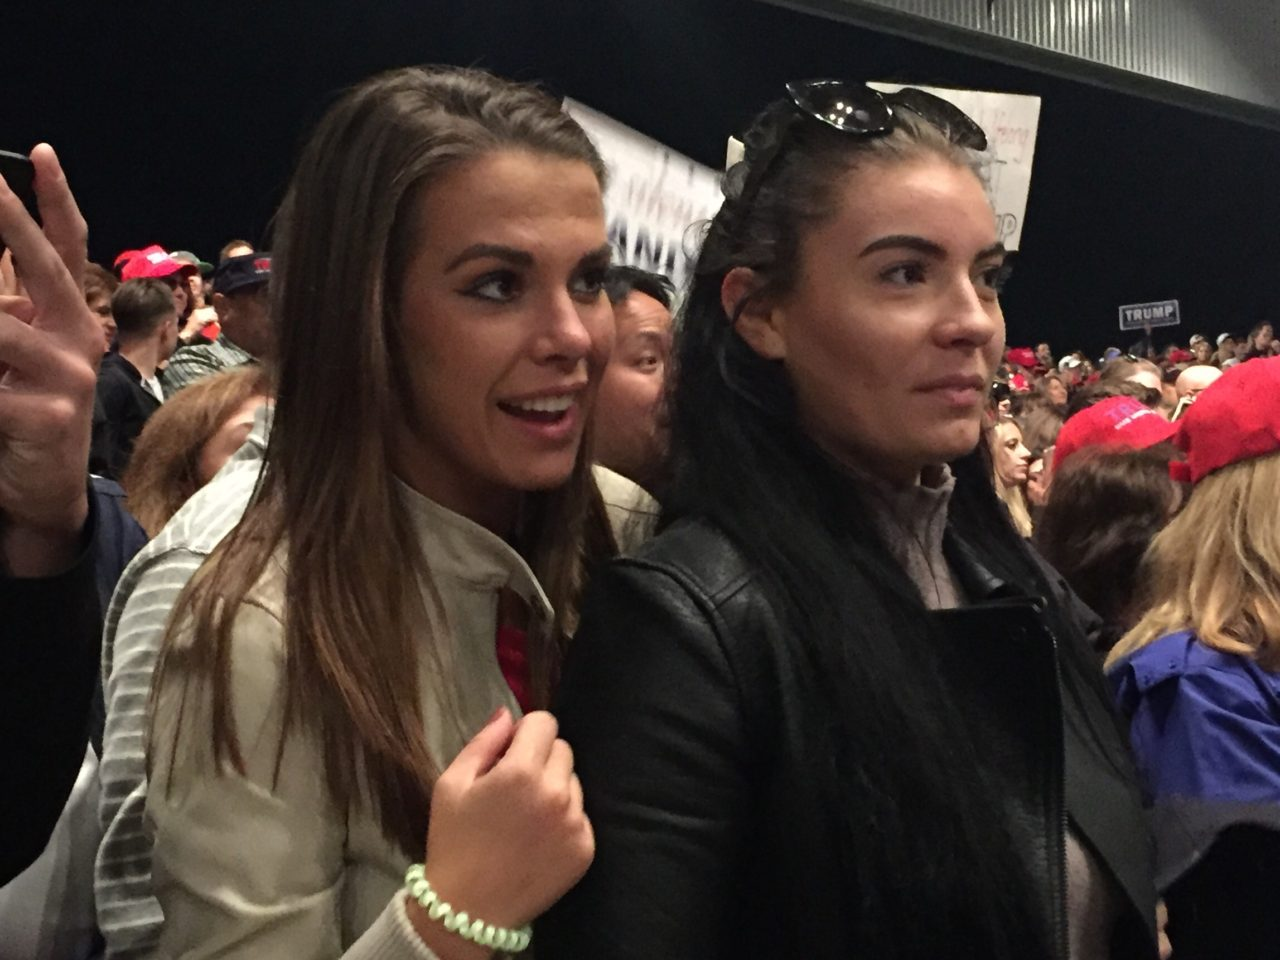 Young Women for Trump Sterling Heights Michigan Rally (Joel Pollak / Breitbart News)